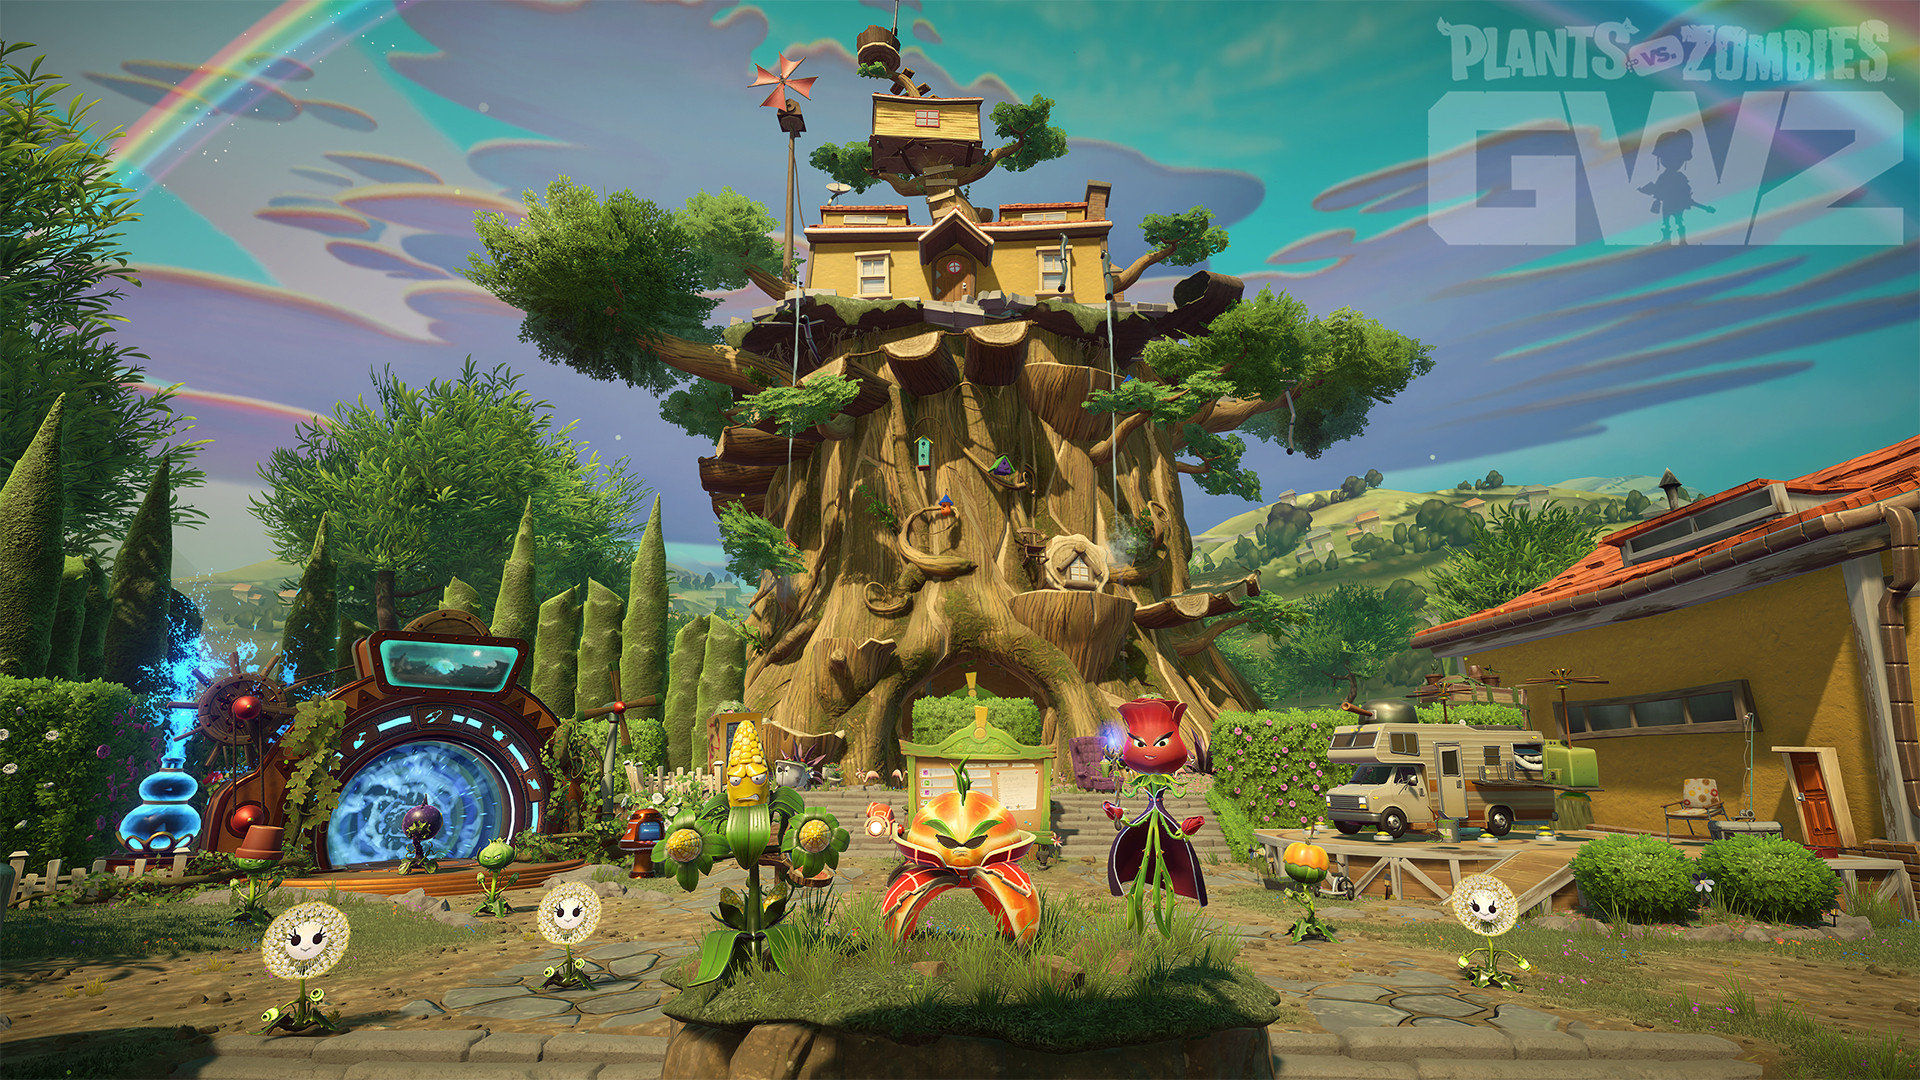 Plants Vs Zombies Garden Warfare 2 Hands On Anteprima Pc Playstation 4 Xbox One